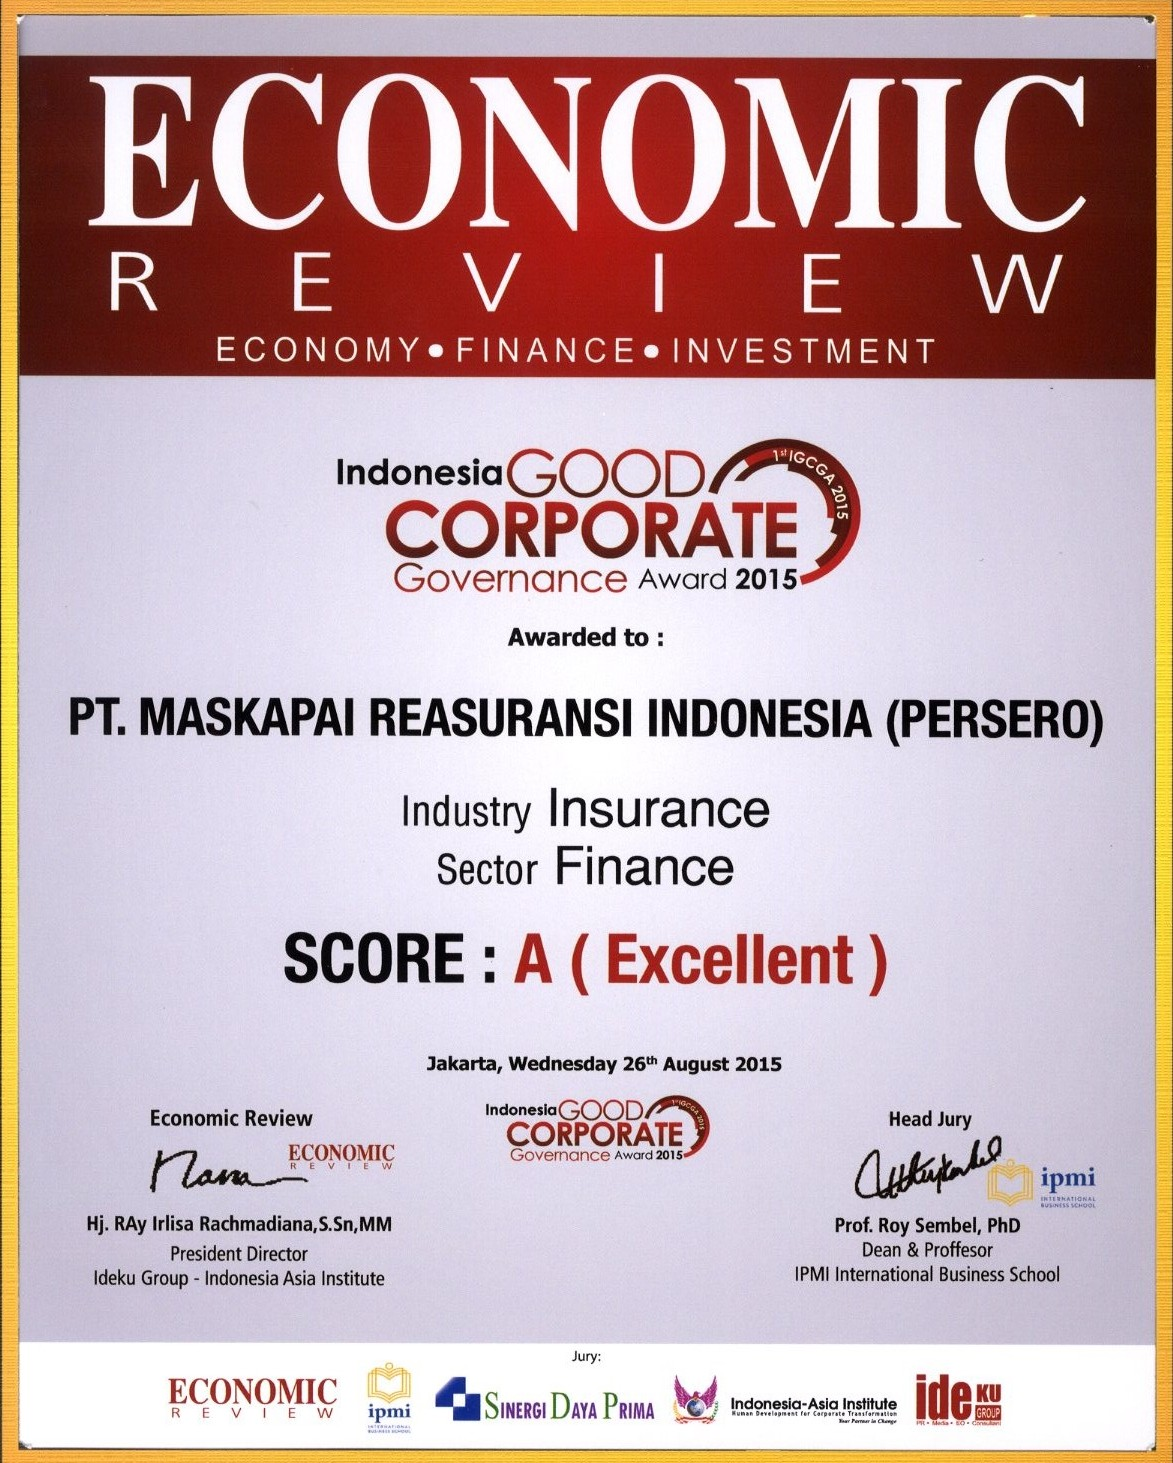 Majalah Economic Review : Outstanding Performance for  Good Corporate Governance Award 2015